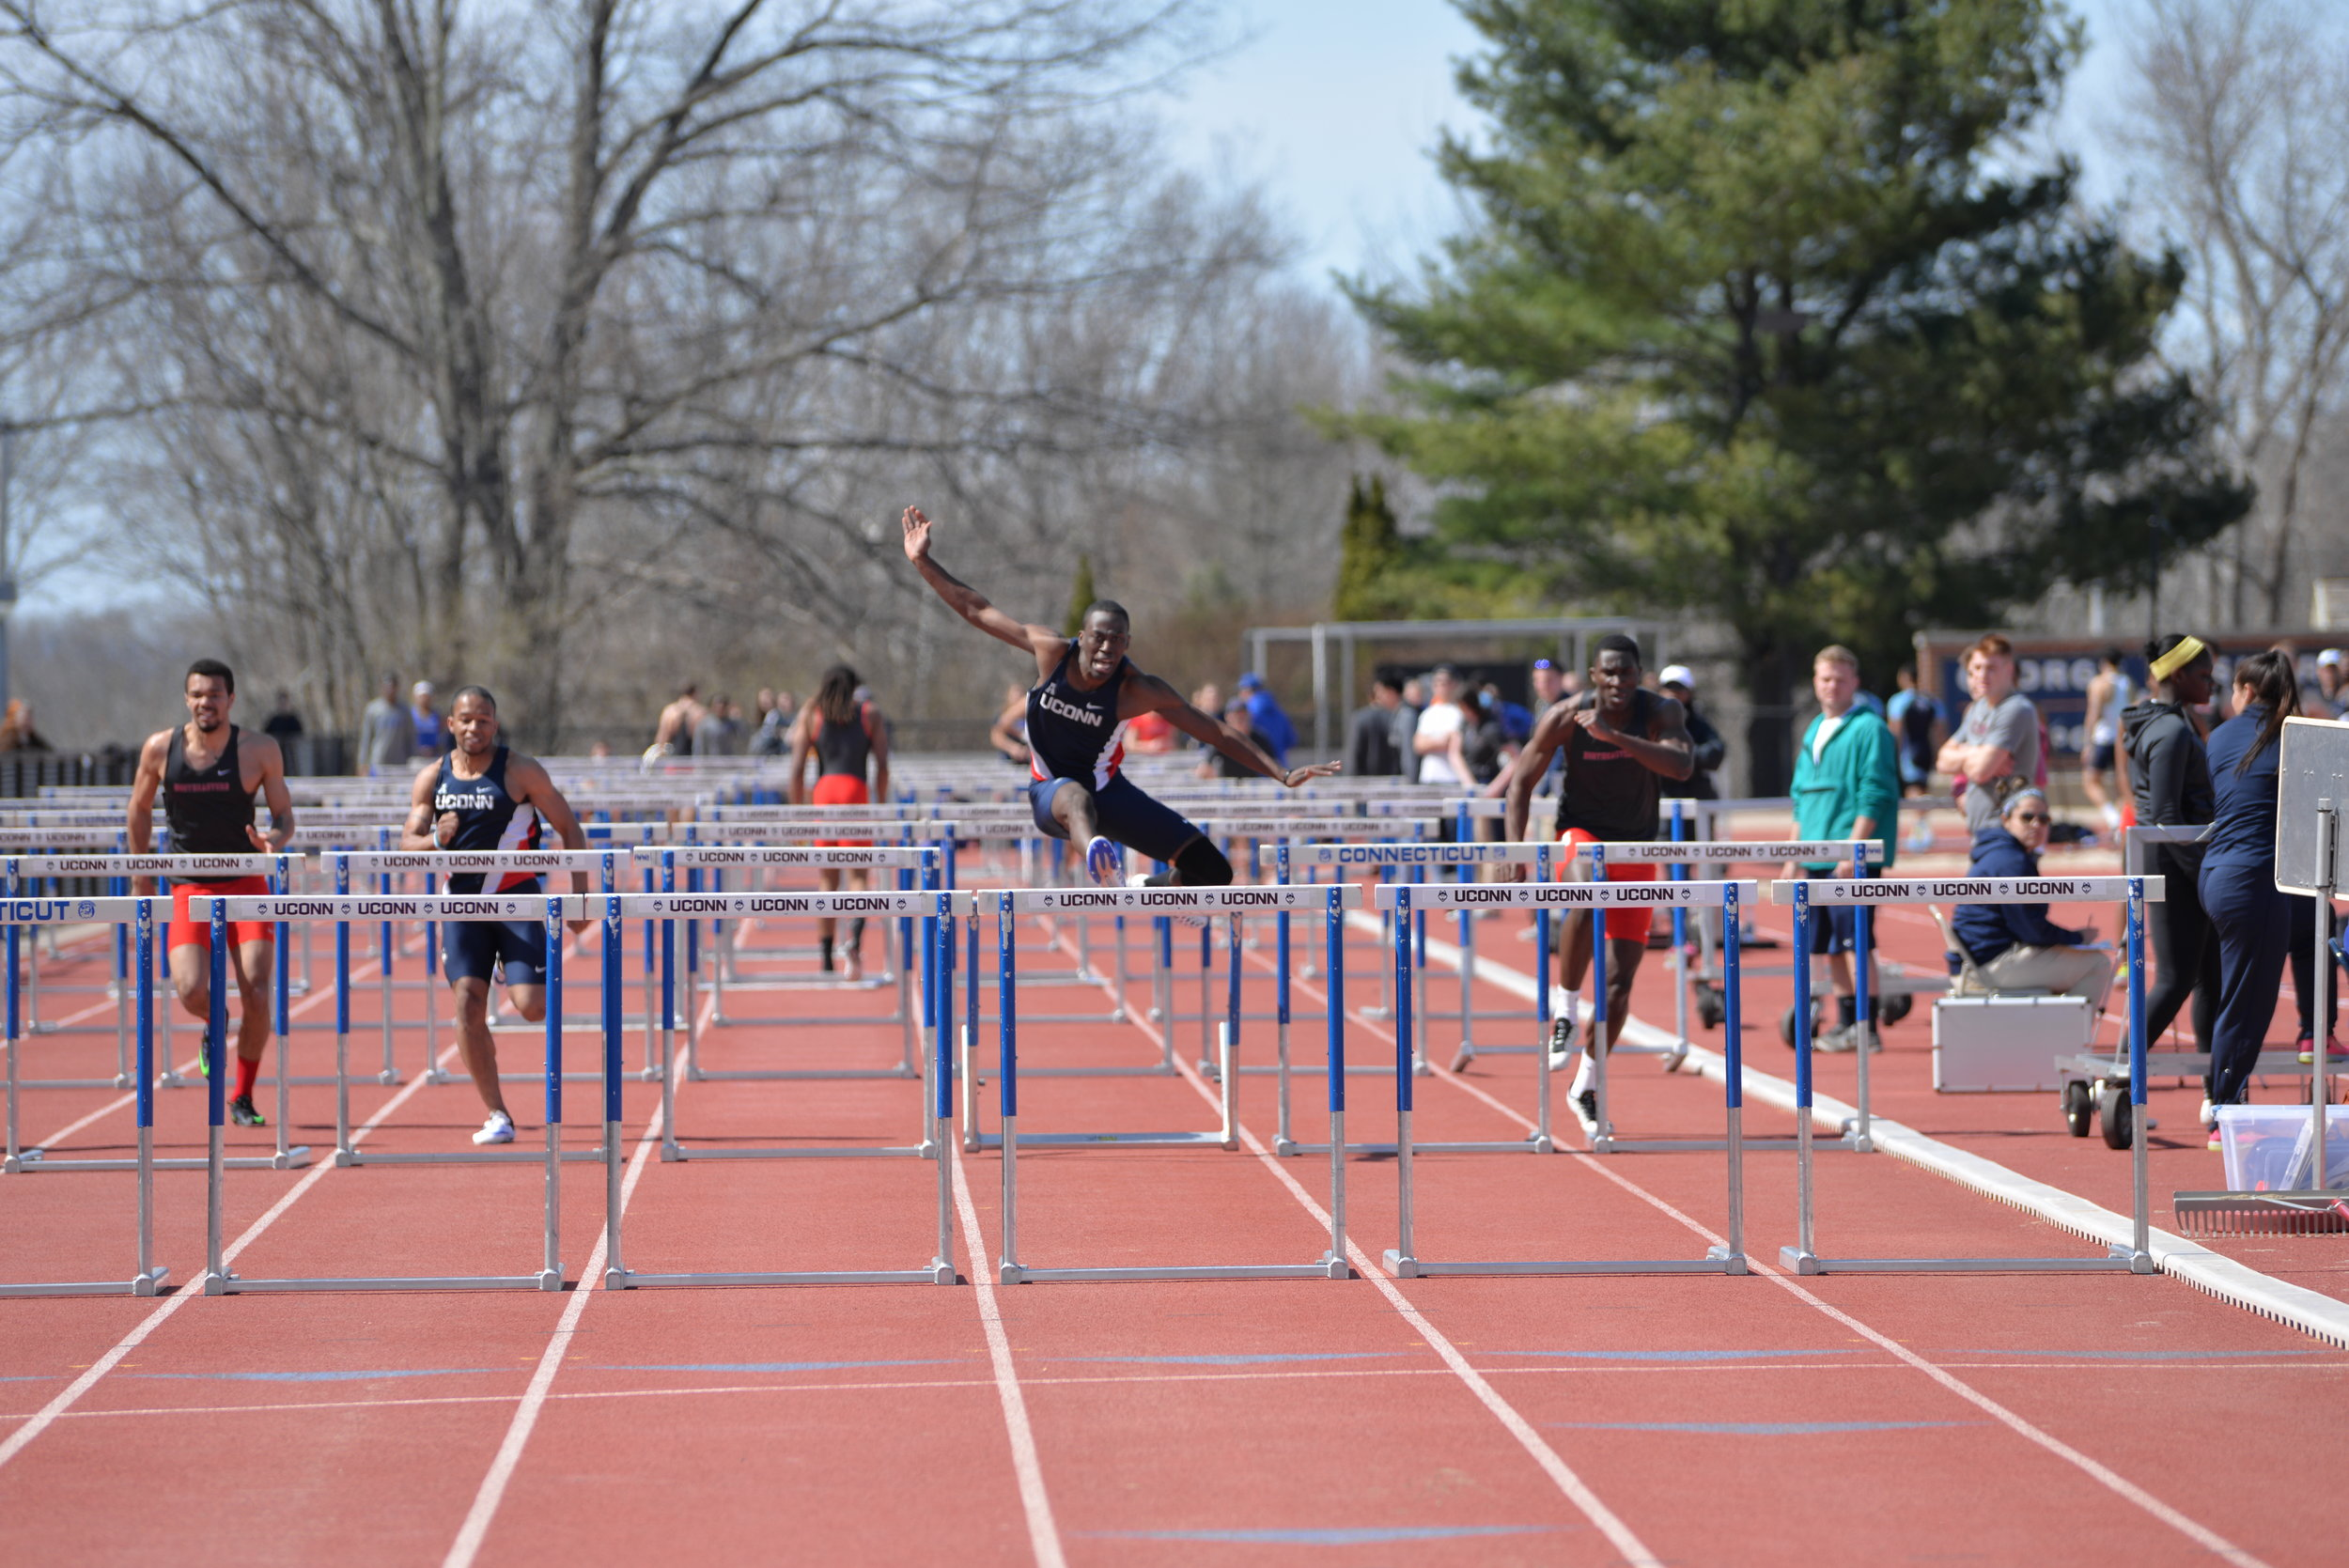 UConn Men's Track and Field. (Photo by Amar Batra/The Daily Campus)